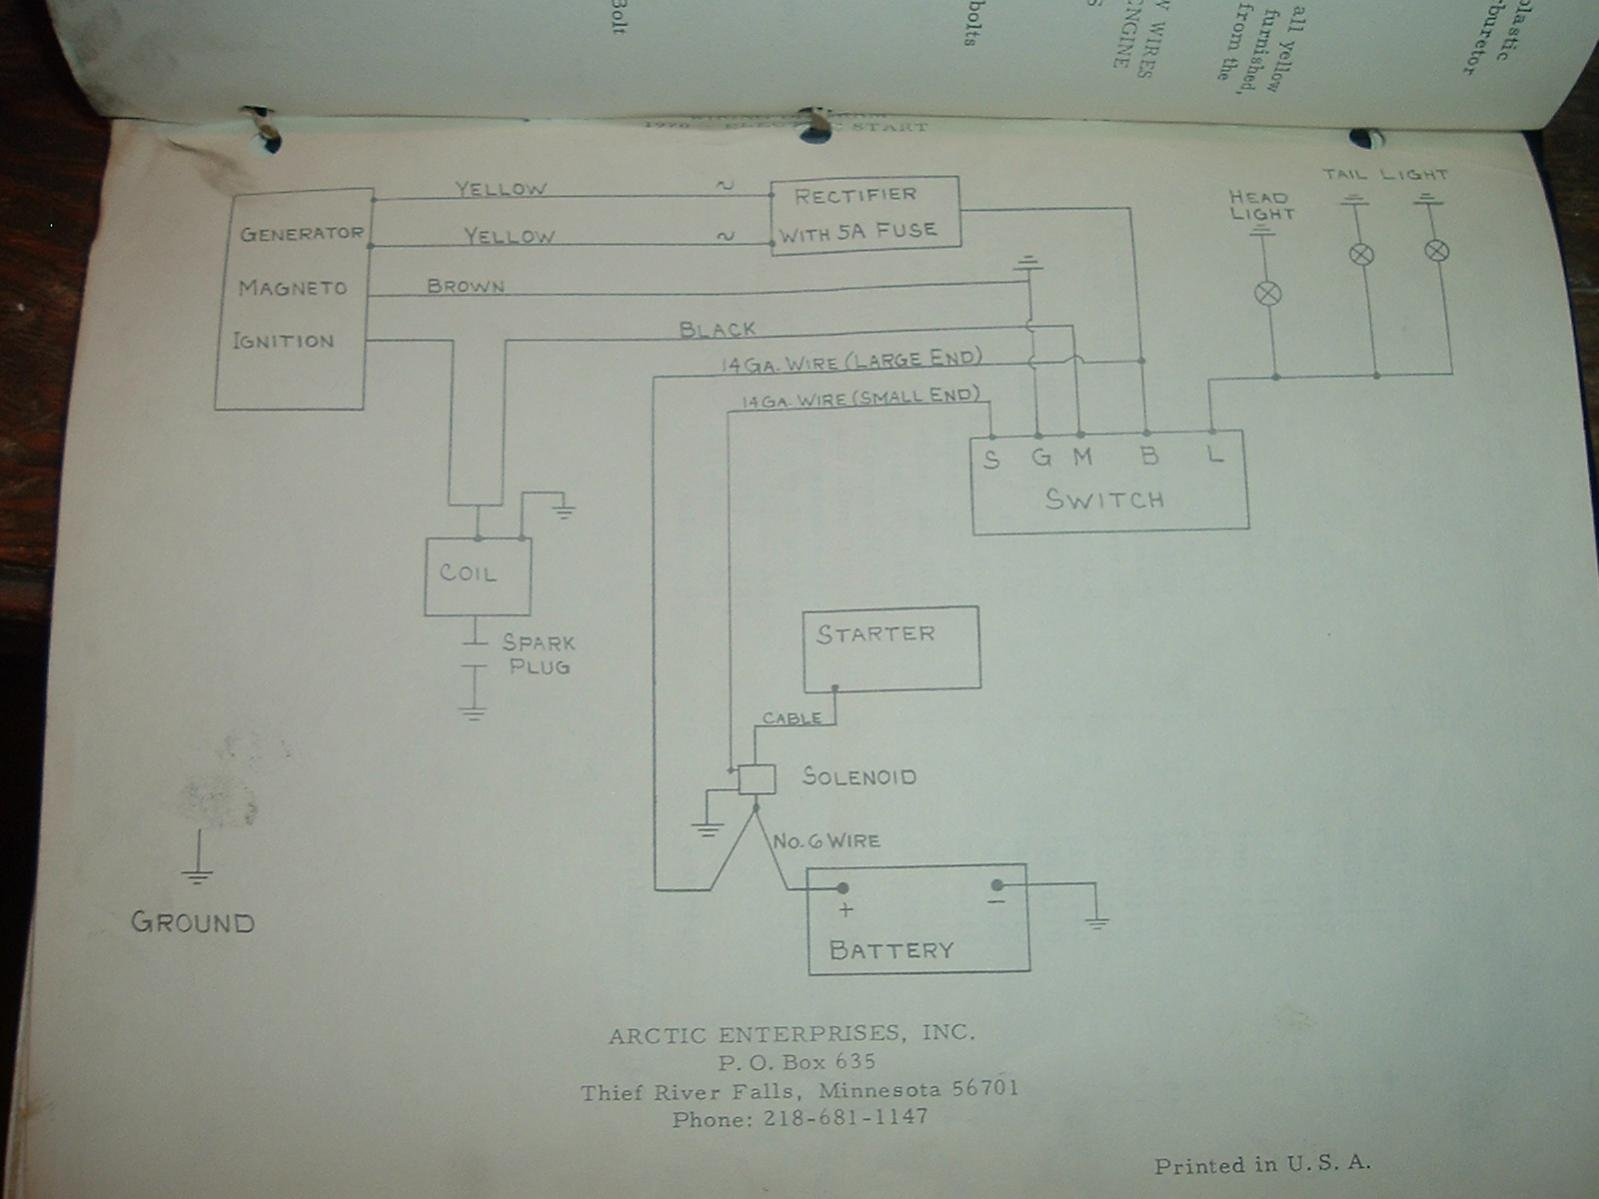 hight resolution of 1988 wildcat wiring diagram just wiring data rh ag skiphire co uk arctic cat